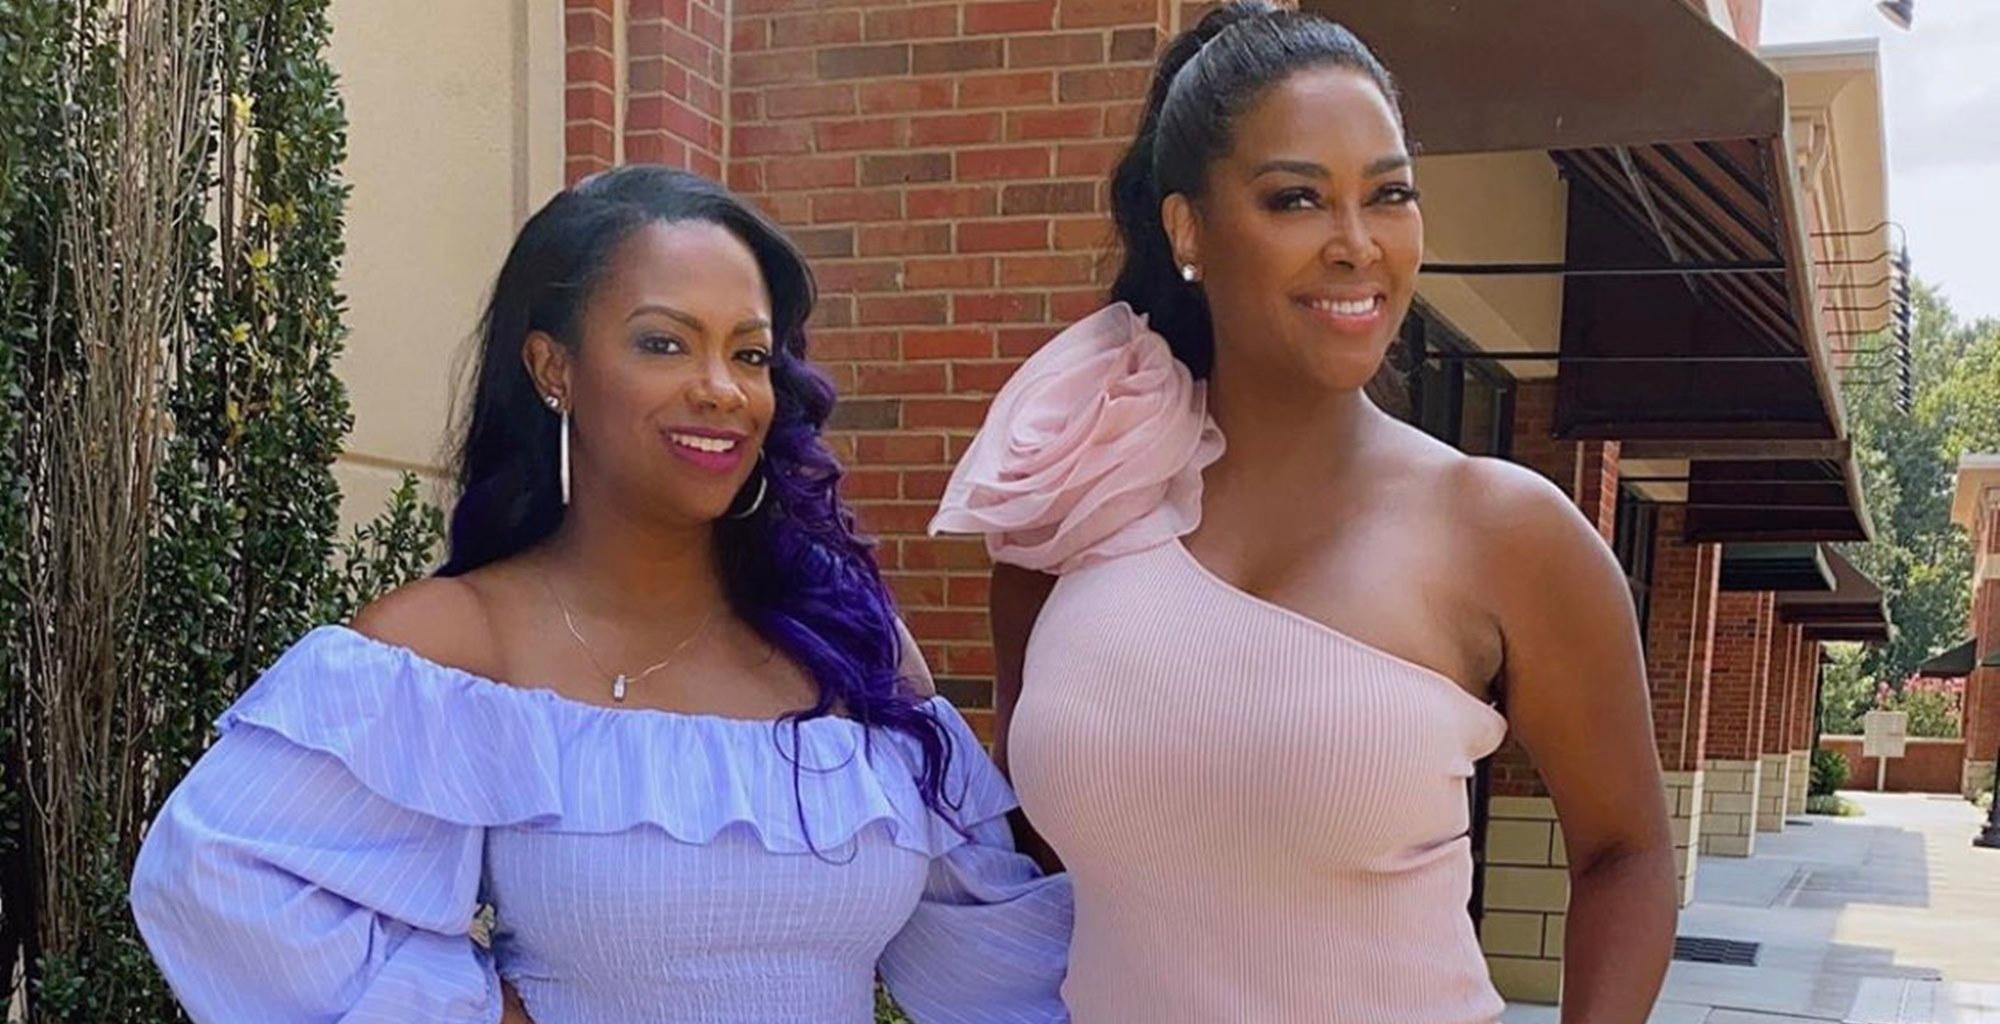 Kandi Burruss And Kenya Moore Have Fierce Bathing Suit Competition In These Photos --  'Real Housewives Of Atlanta' Fans Have A Hard Time Picking The Winner